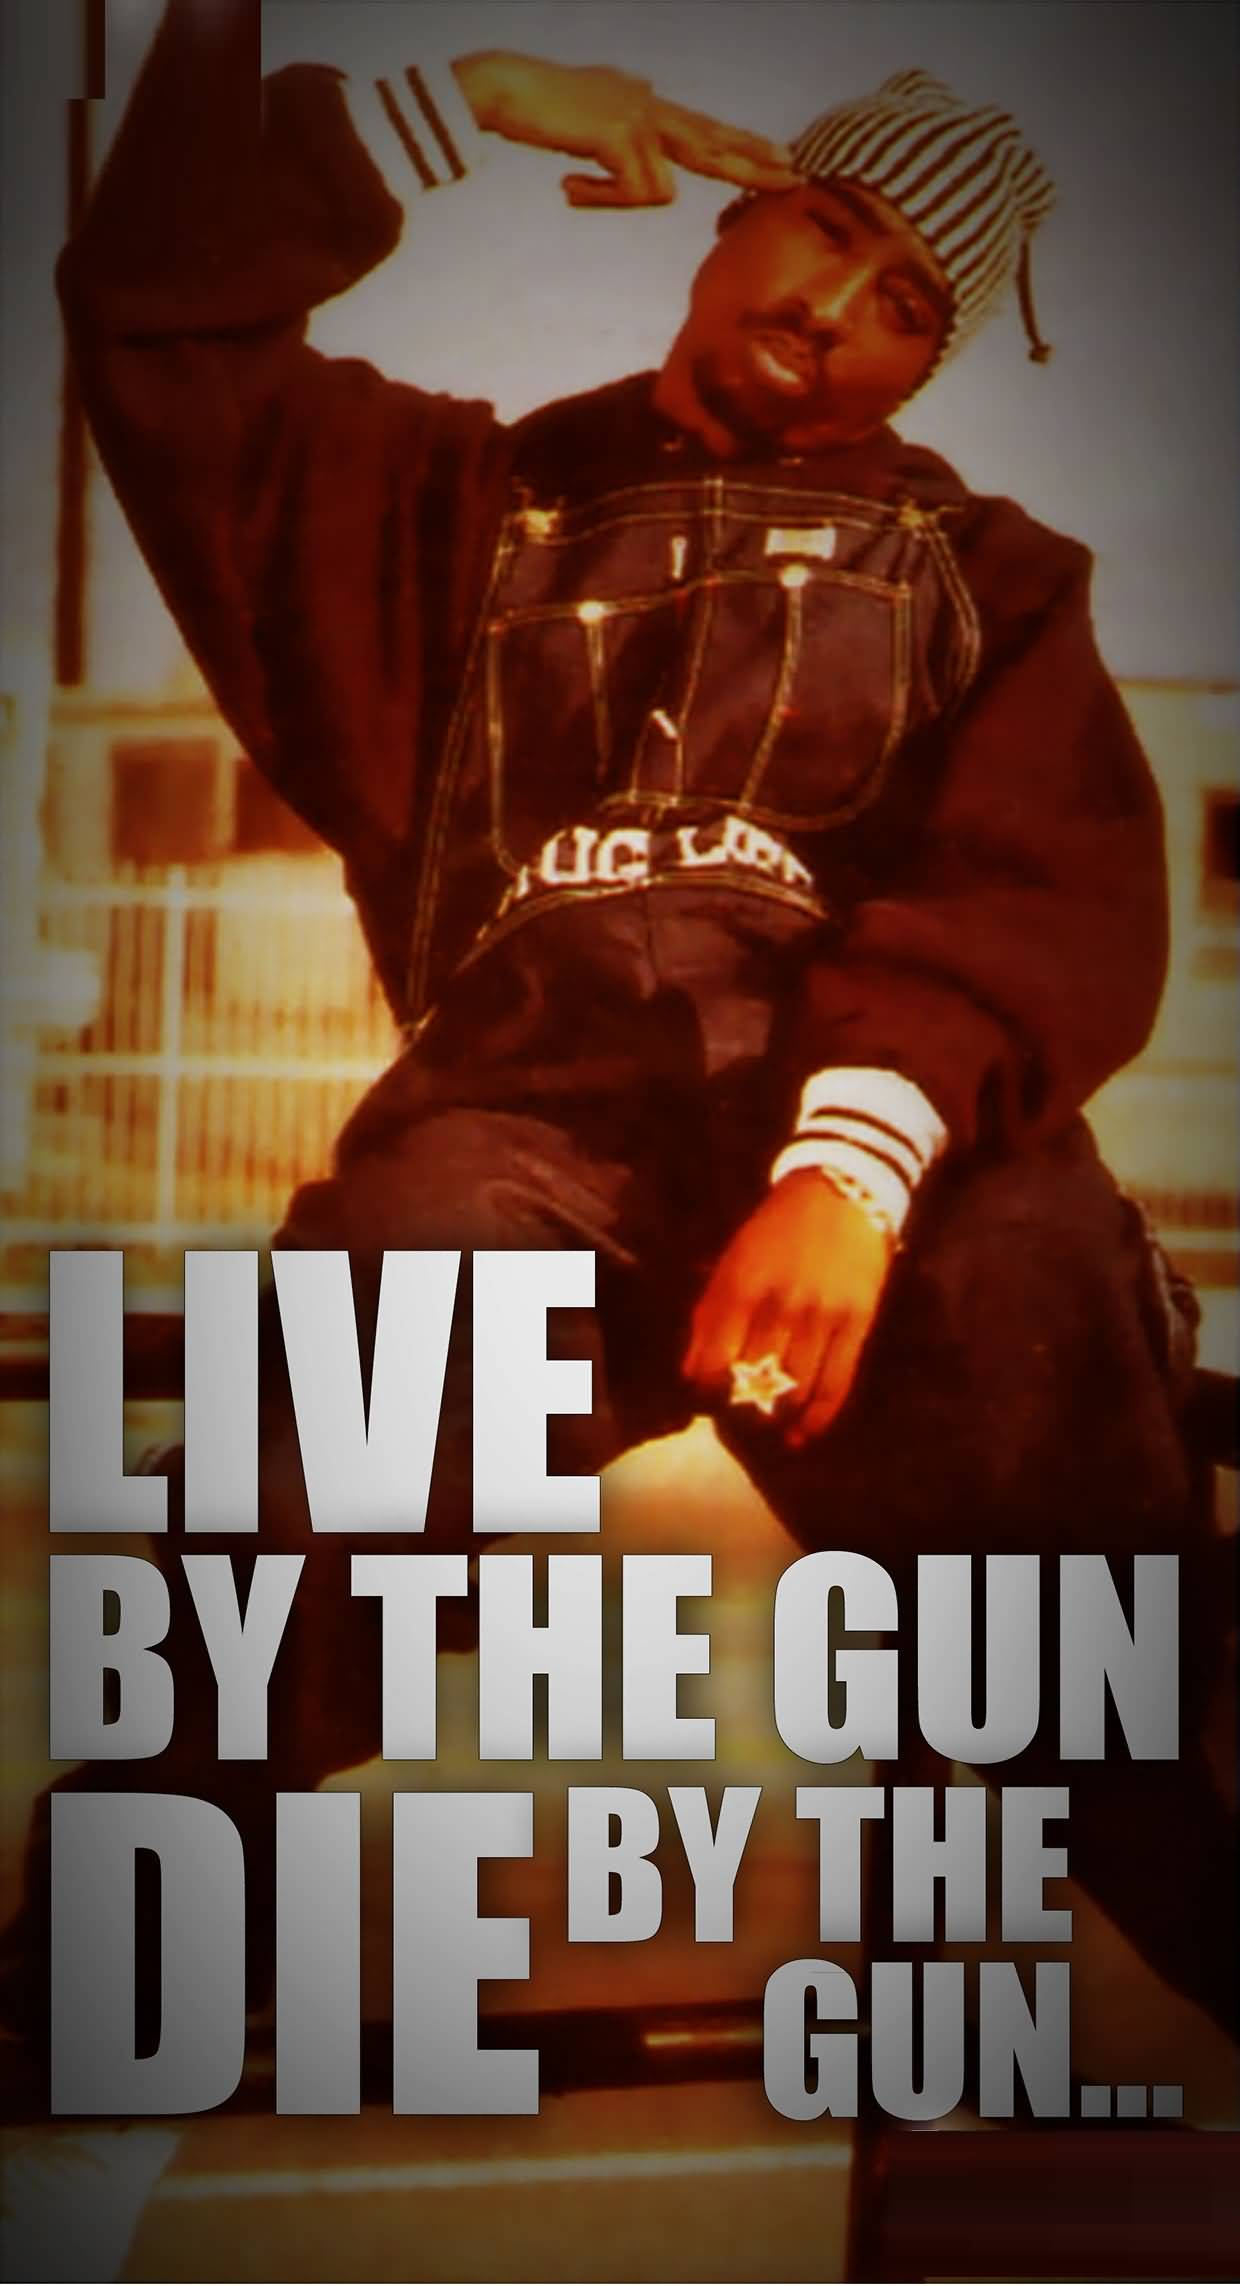 Live by the gun die by the gun